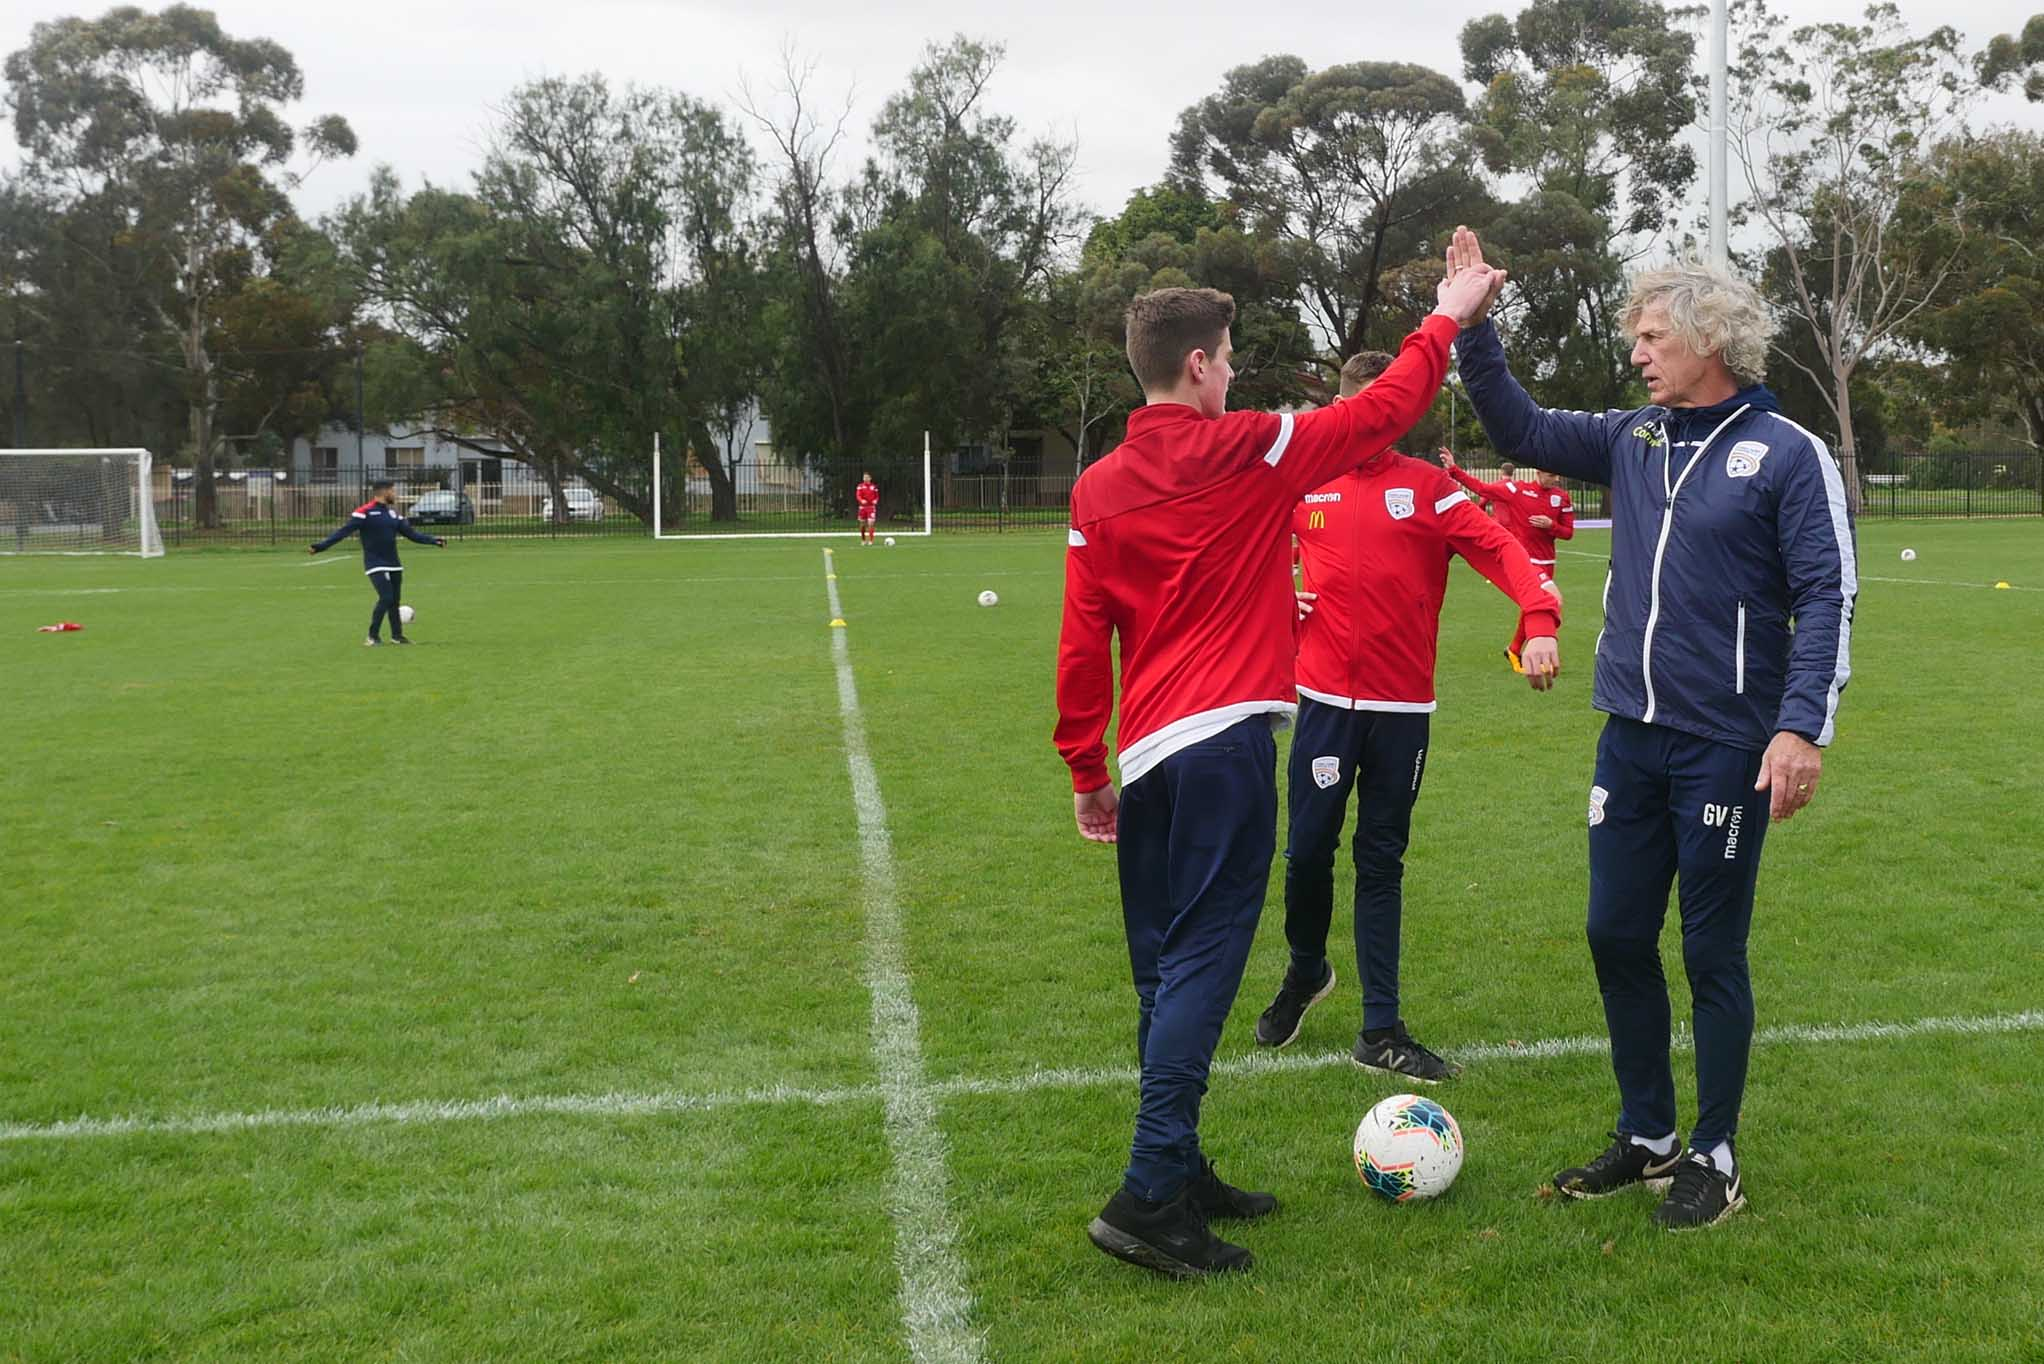 Image of a young man high giving a soccer coach of the pitch.